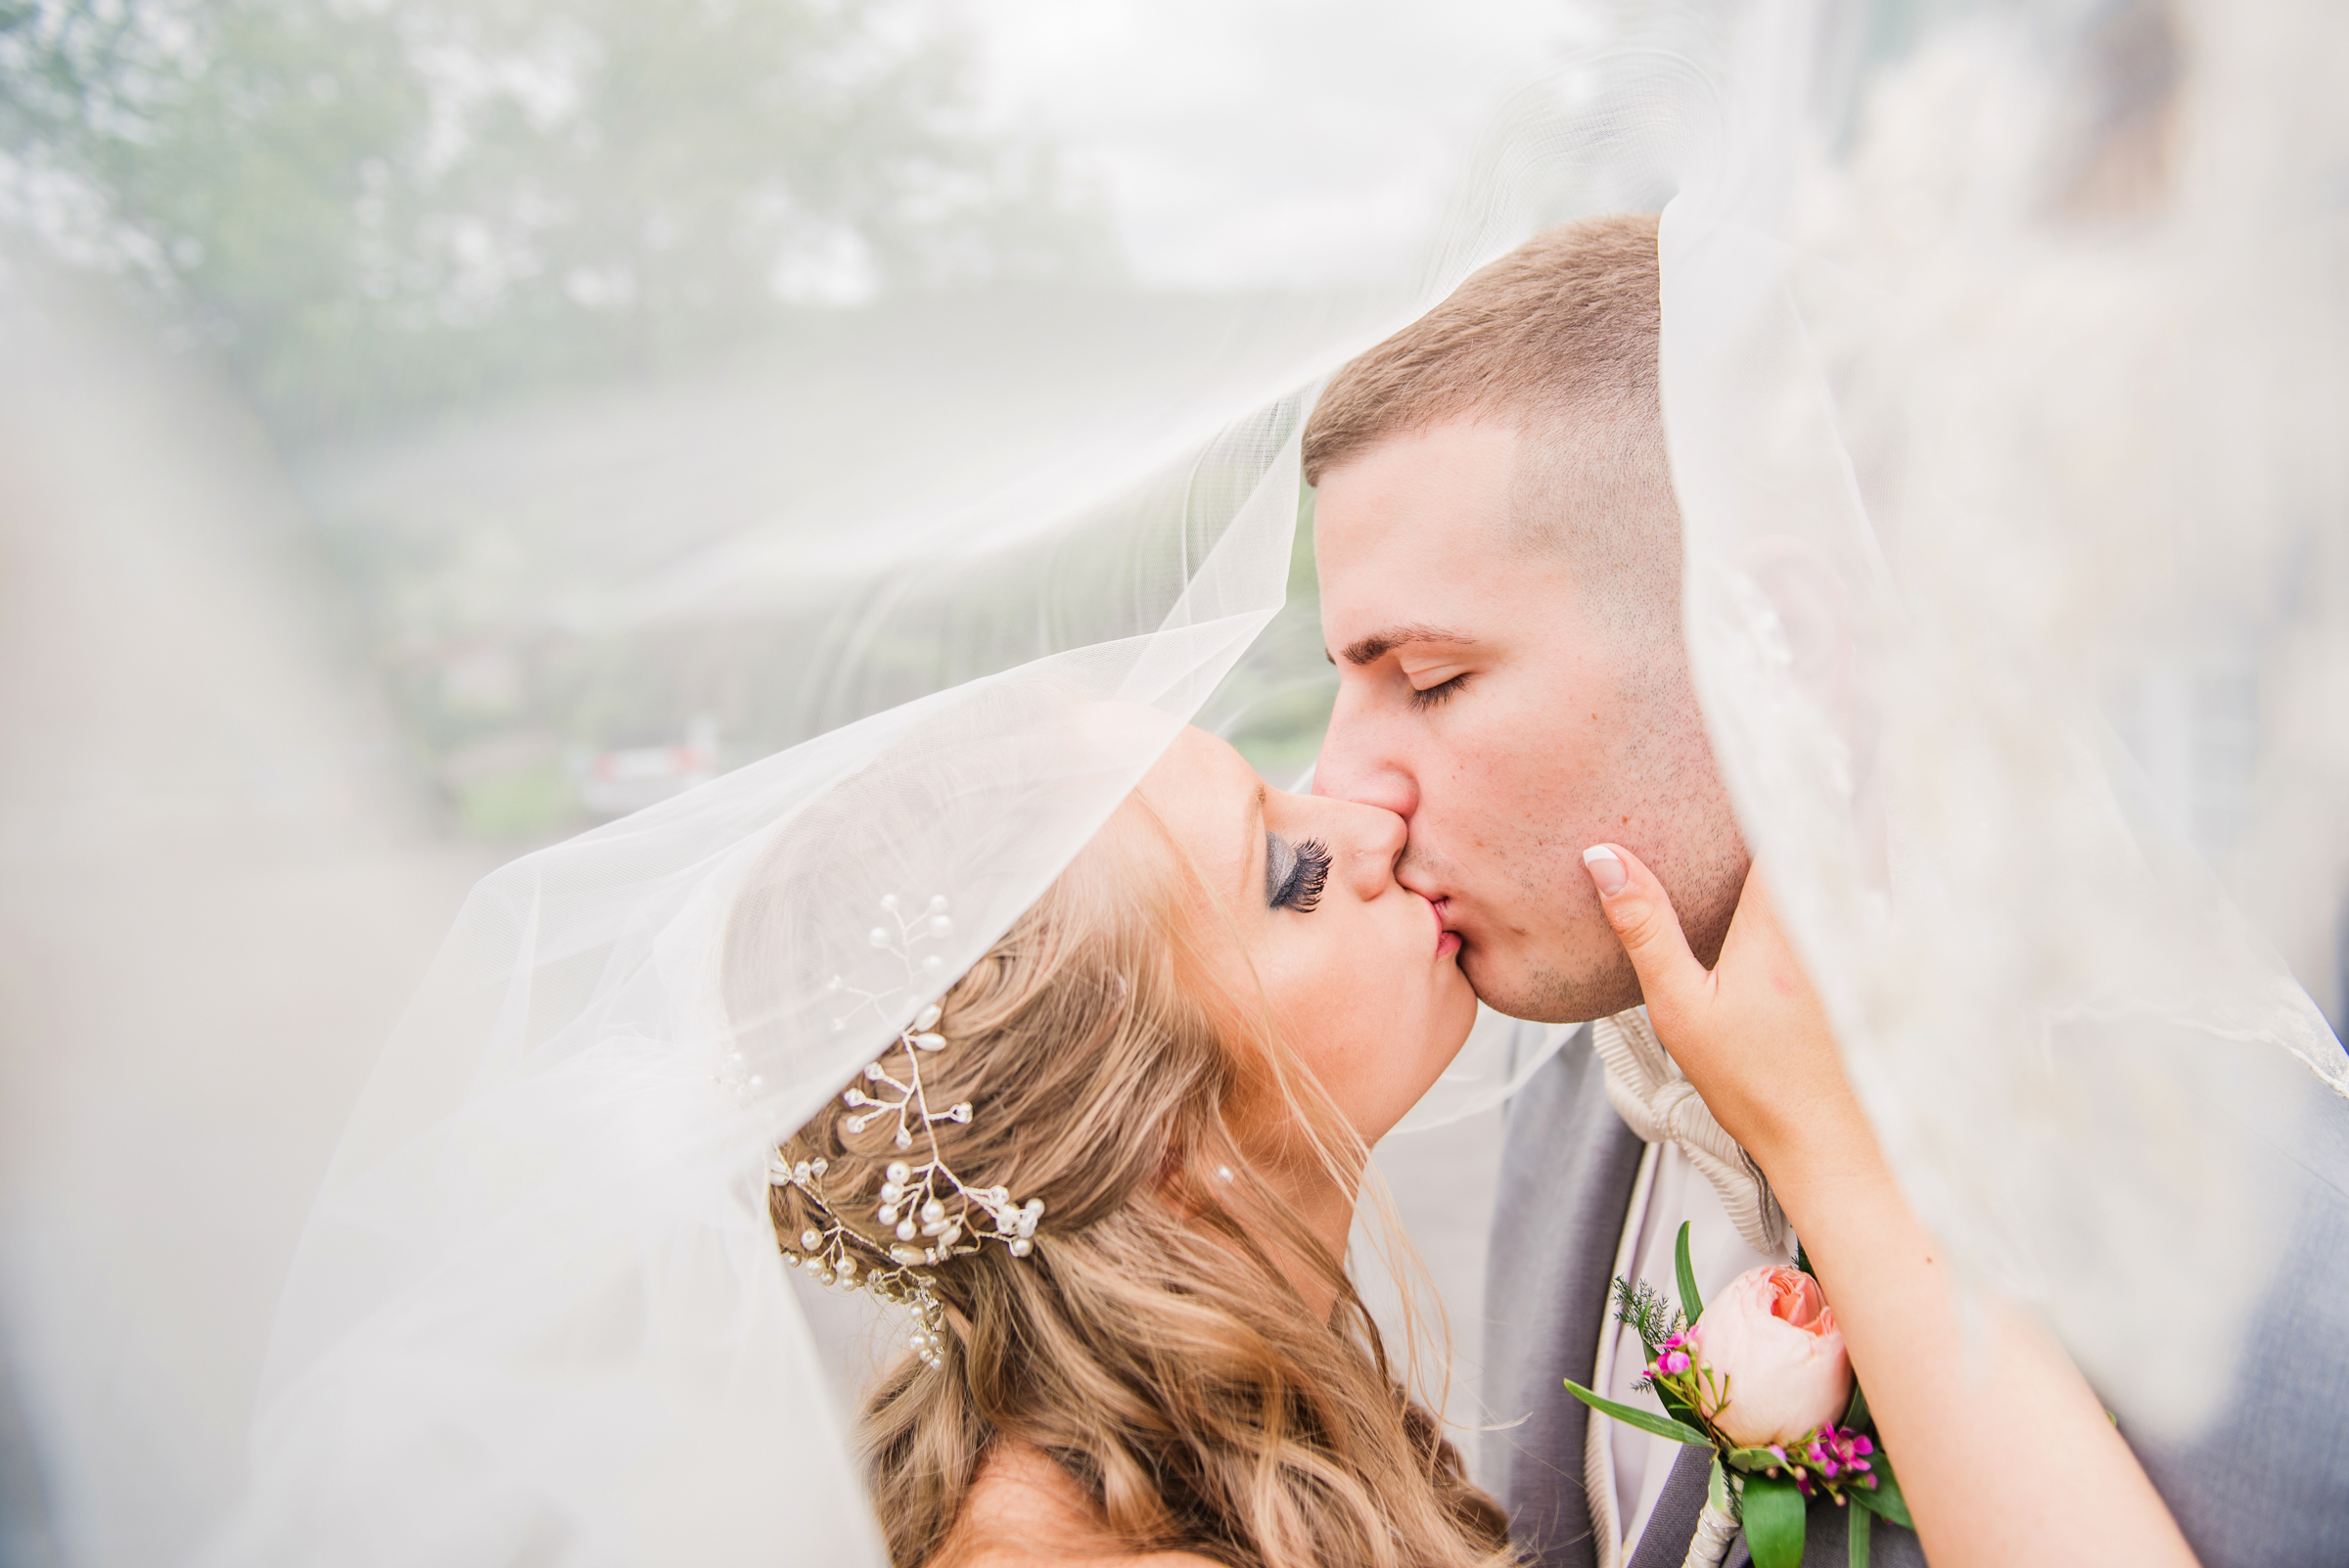 JILL_STUDIO_Wedding_JILL_STUDIO_Rochester_NY_Photographer_18-DSC_8685.jpg